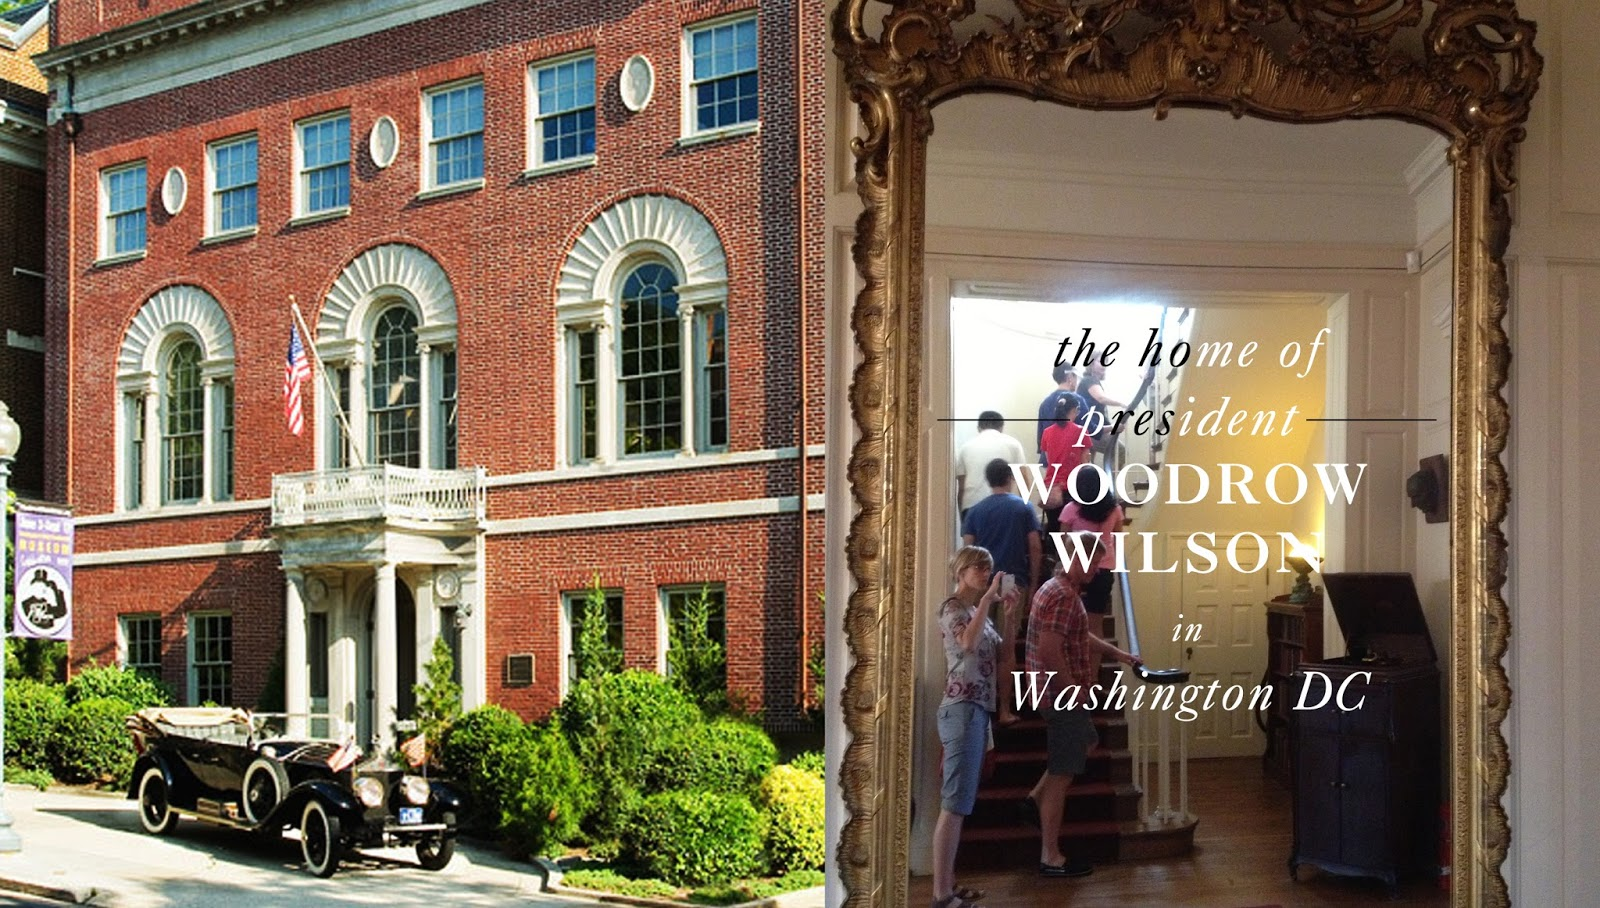 turn of the centuries woodrow wilson s house in washington dc we re on a woodrow wilson tour this week it seems after a crippling stroke in office and at the end of his term wilson and his second wife edith